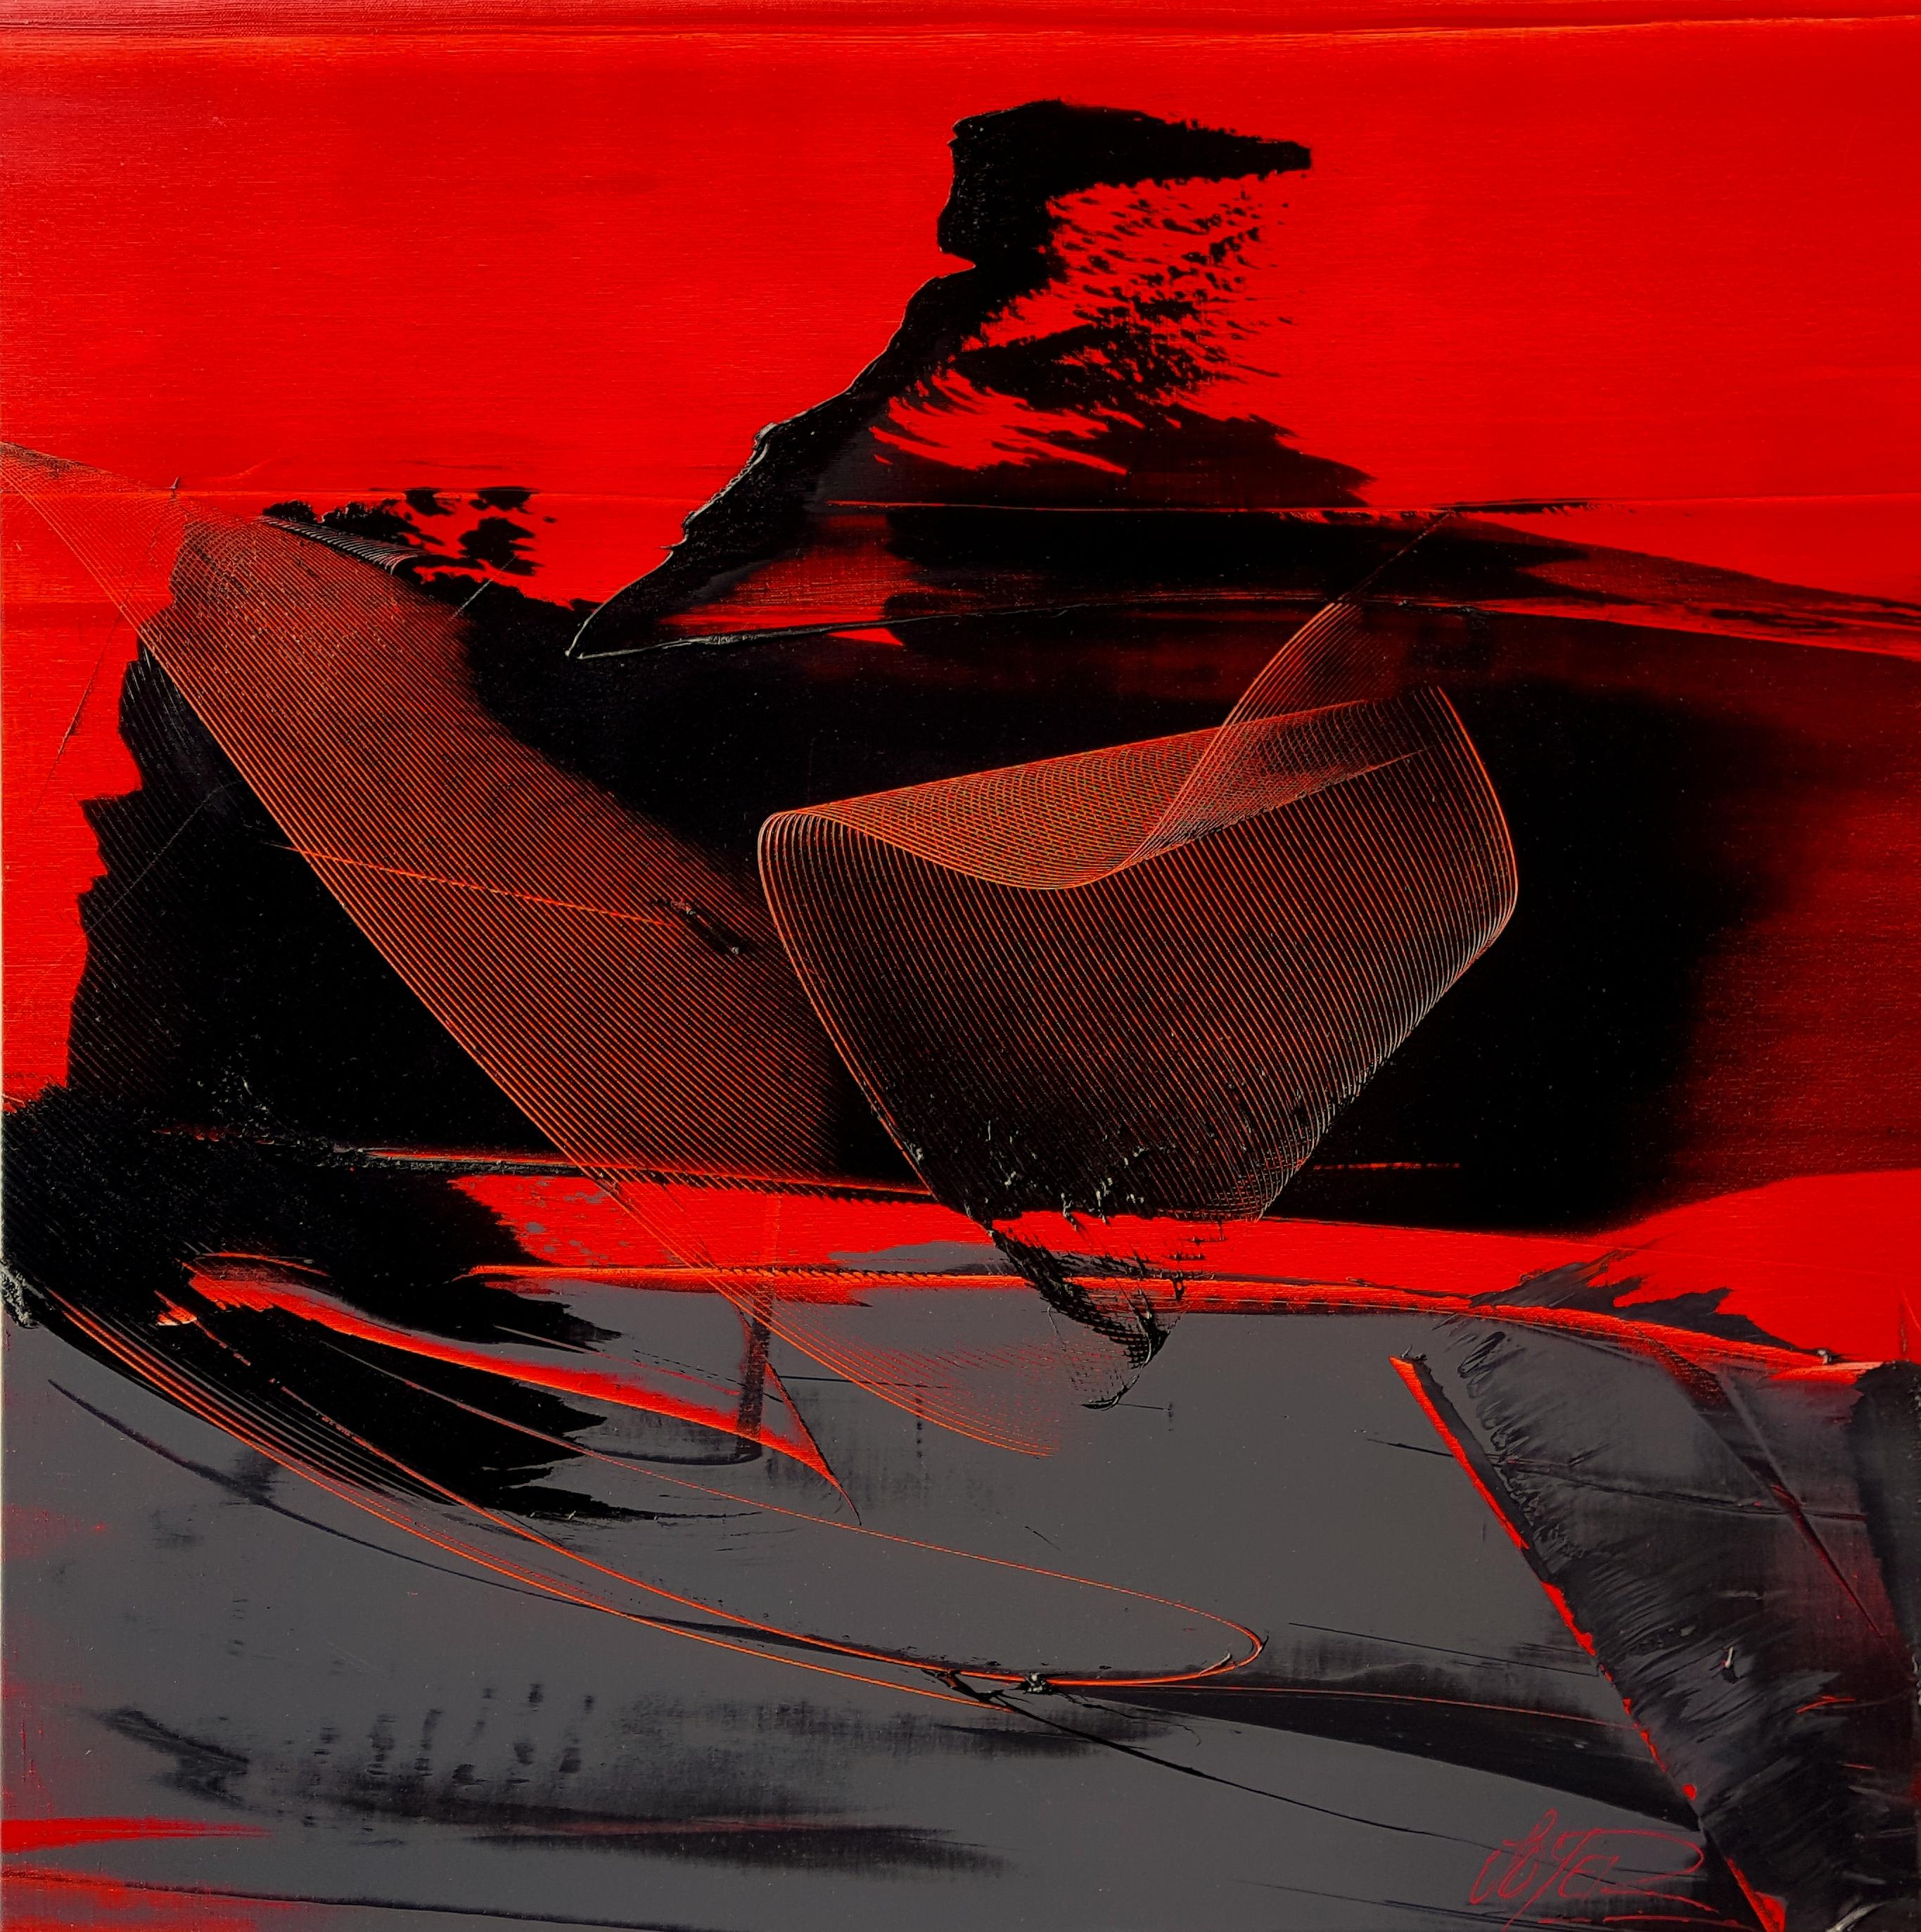 Black and Grey on Red Background Lyrical Abstraction Oil Painting, Untitled